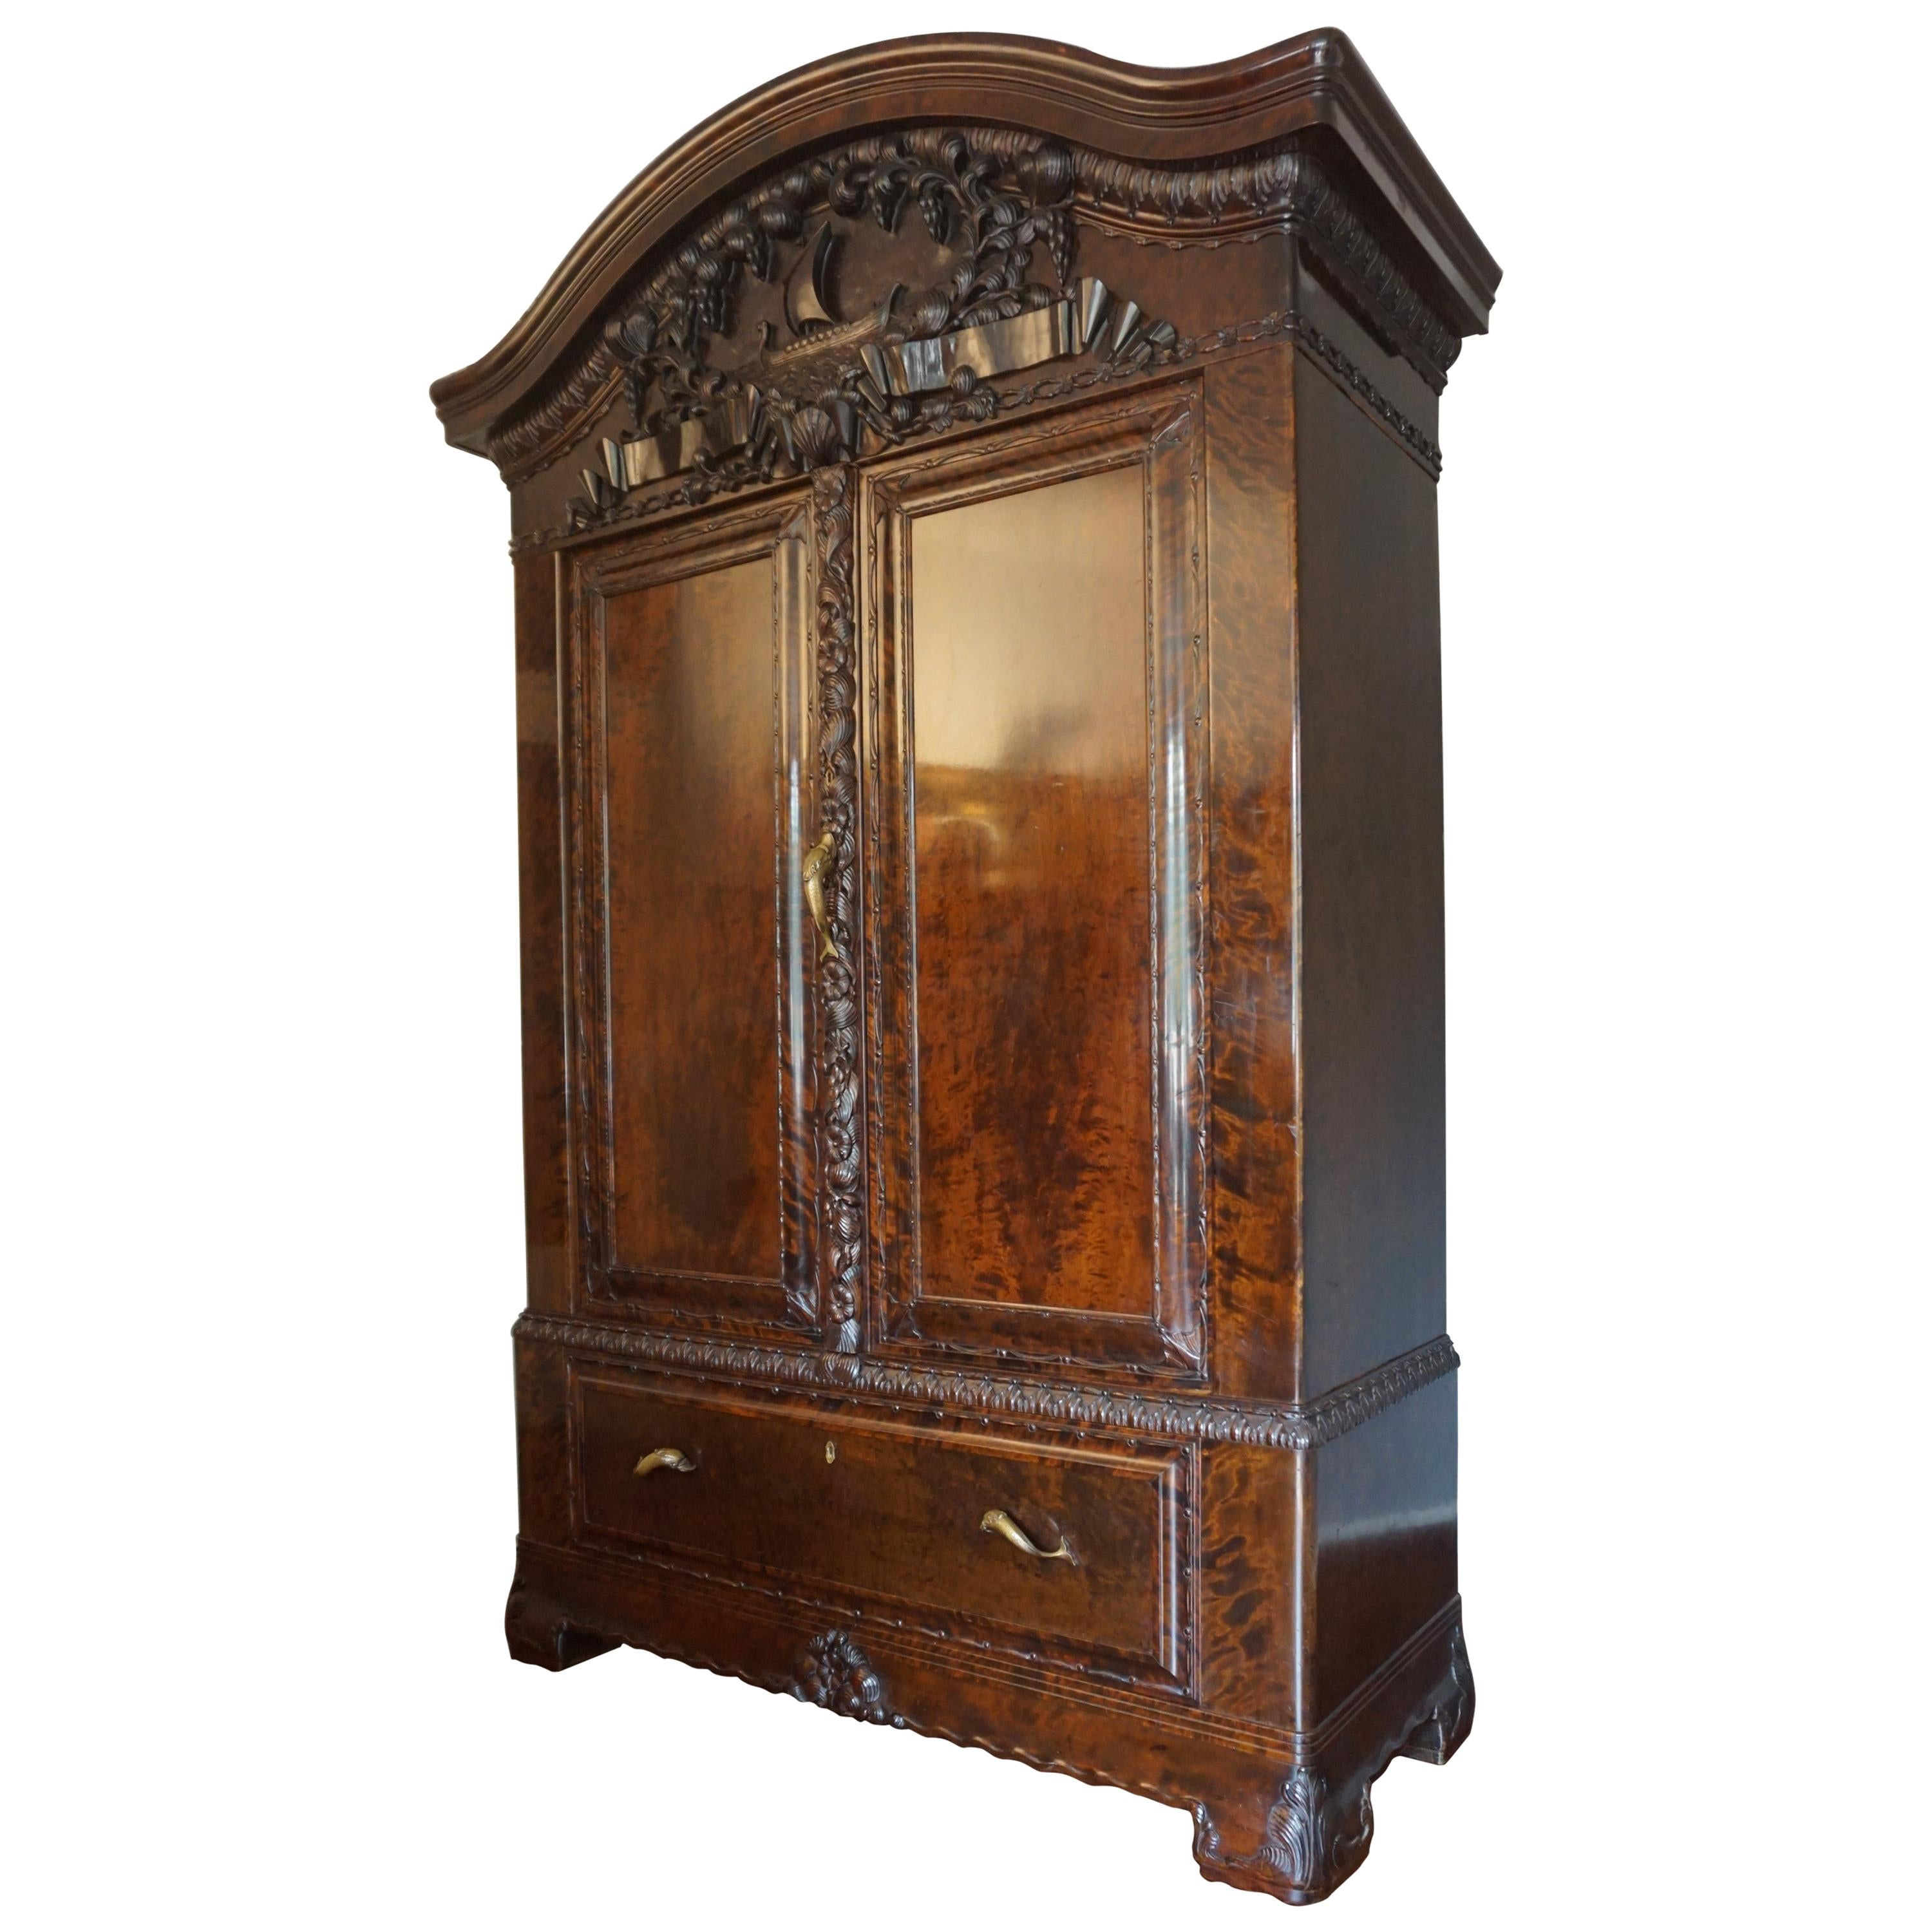 Beau Arts And Crafts Carved Oak Wall Cabinet For Sale At 1stdibs